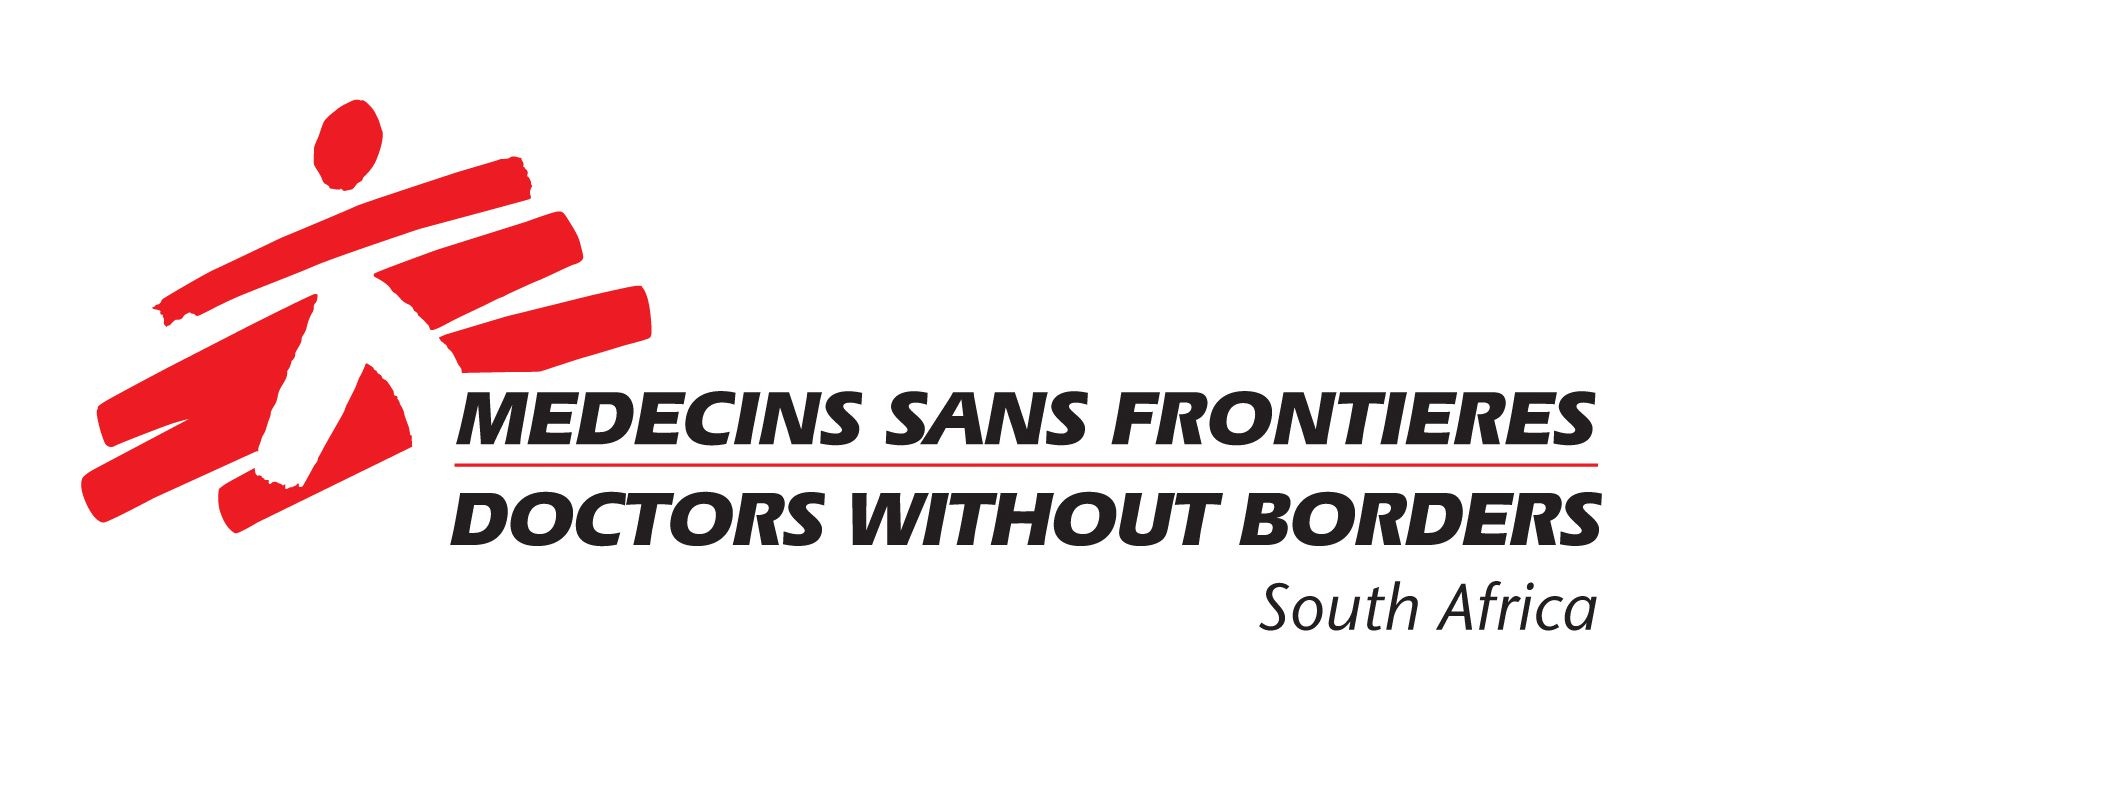 Medecins Sans Frontieres South Africa Thumb Image